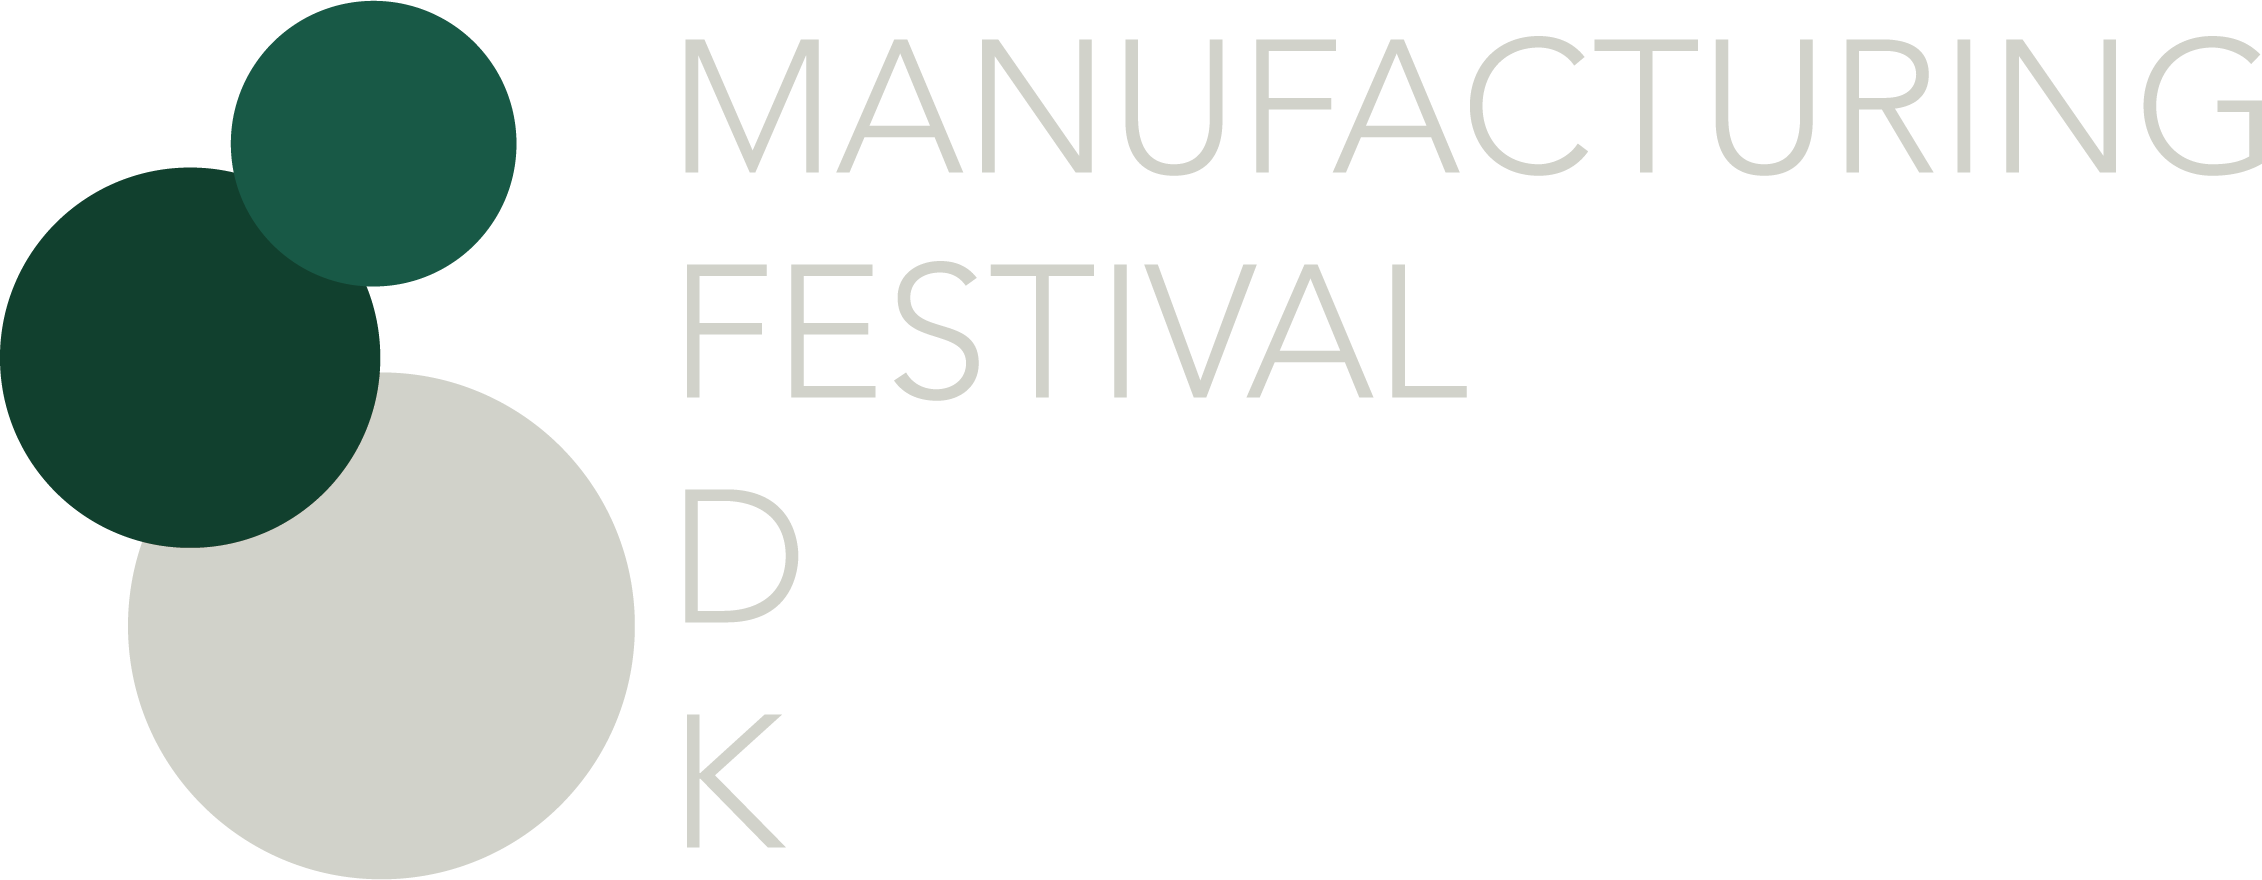 Manufacturing Festival